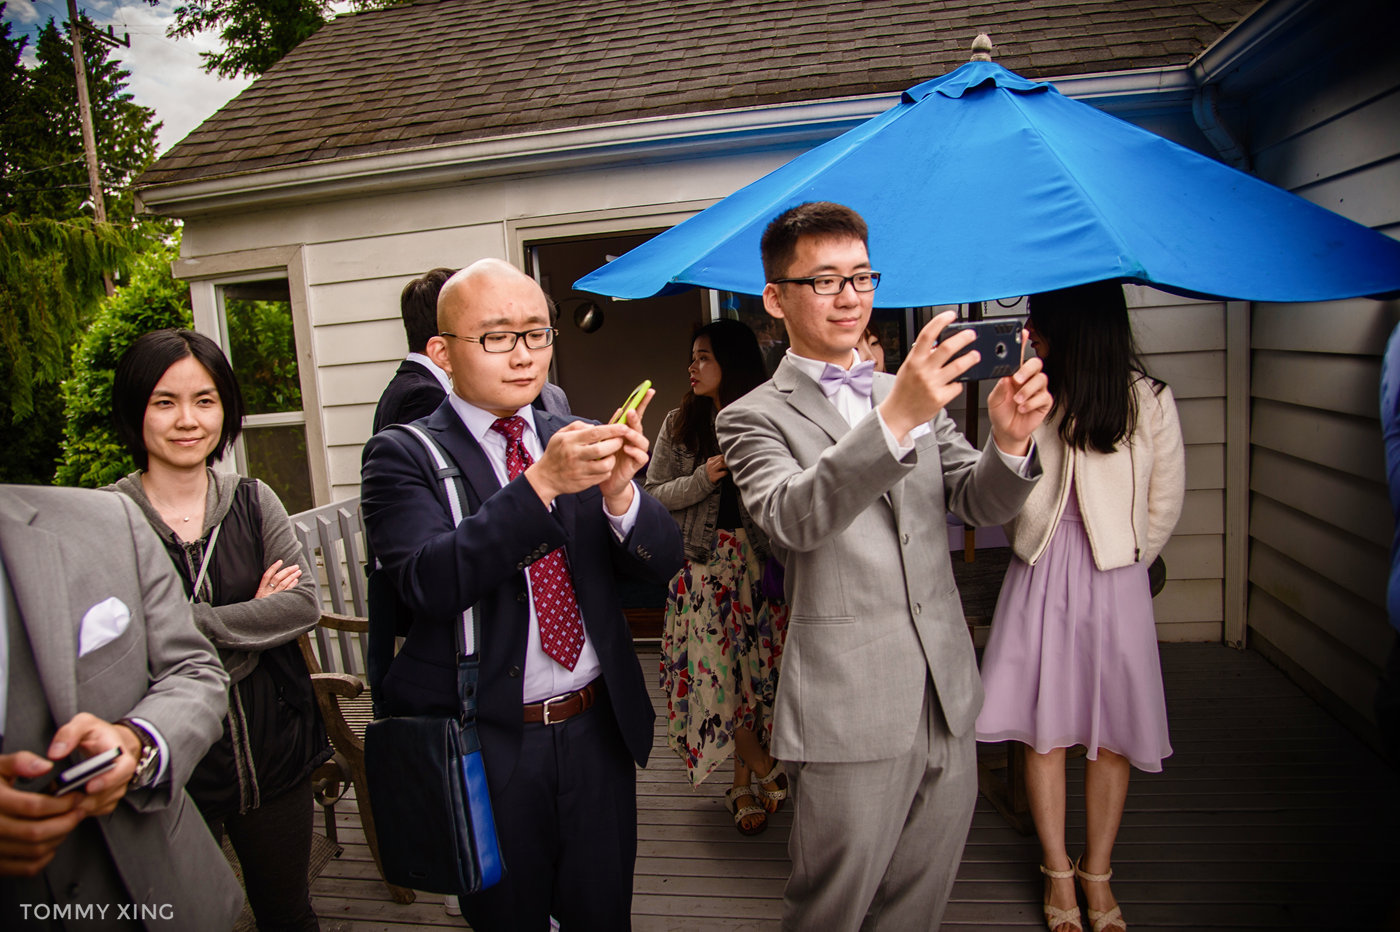 Seattle Wedding and pre wedding Los Angeles Tommy Xing Photography 西雅图洛杉矶旧金山婚礼婚纱照摄影师 139.jpg